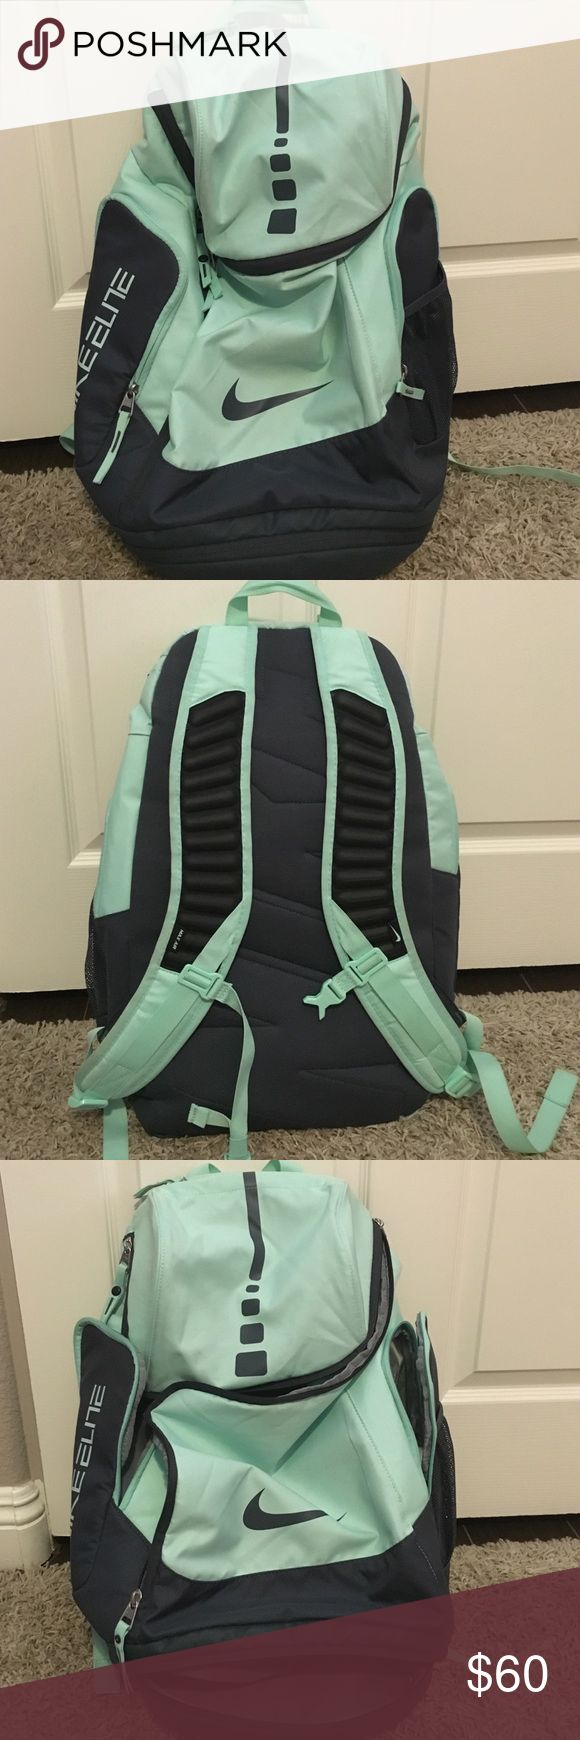 Nike Hoops Elite Basketball Backpack Nike Elite Basketball Backpack. Very good condition, all zippers work great. Minimal dirt marks which can be easily cleaned with water and soap. Perfect for basketball with shoe storage on the bottom. Nike Bags Backpacks